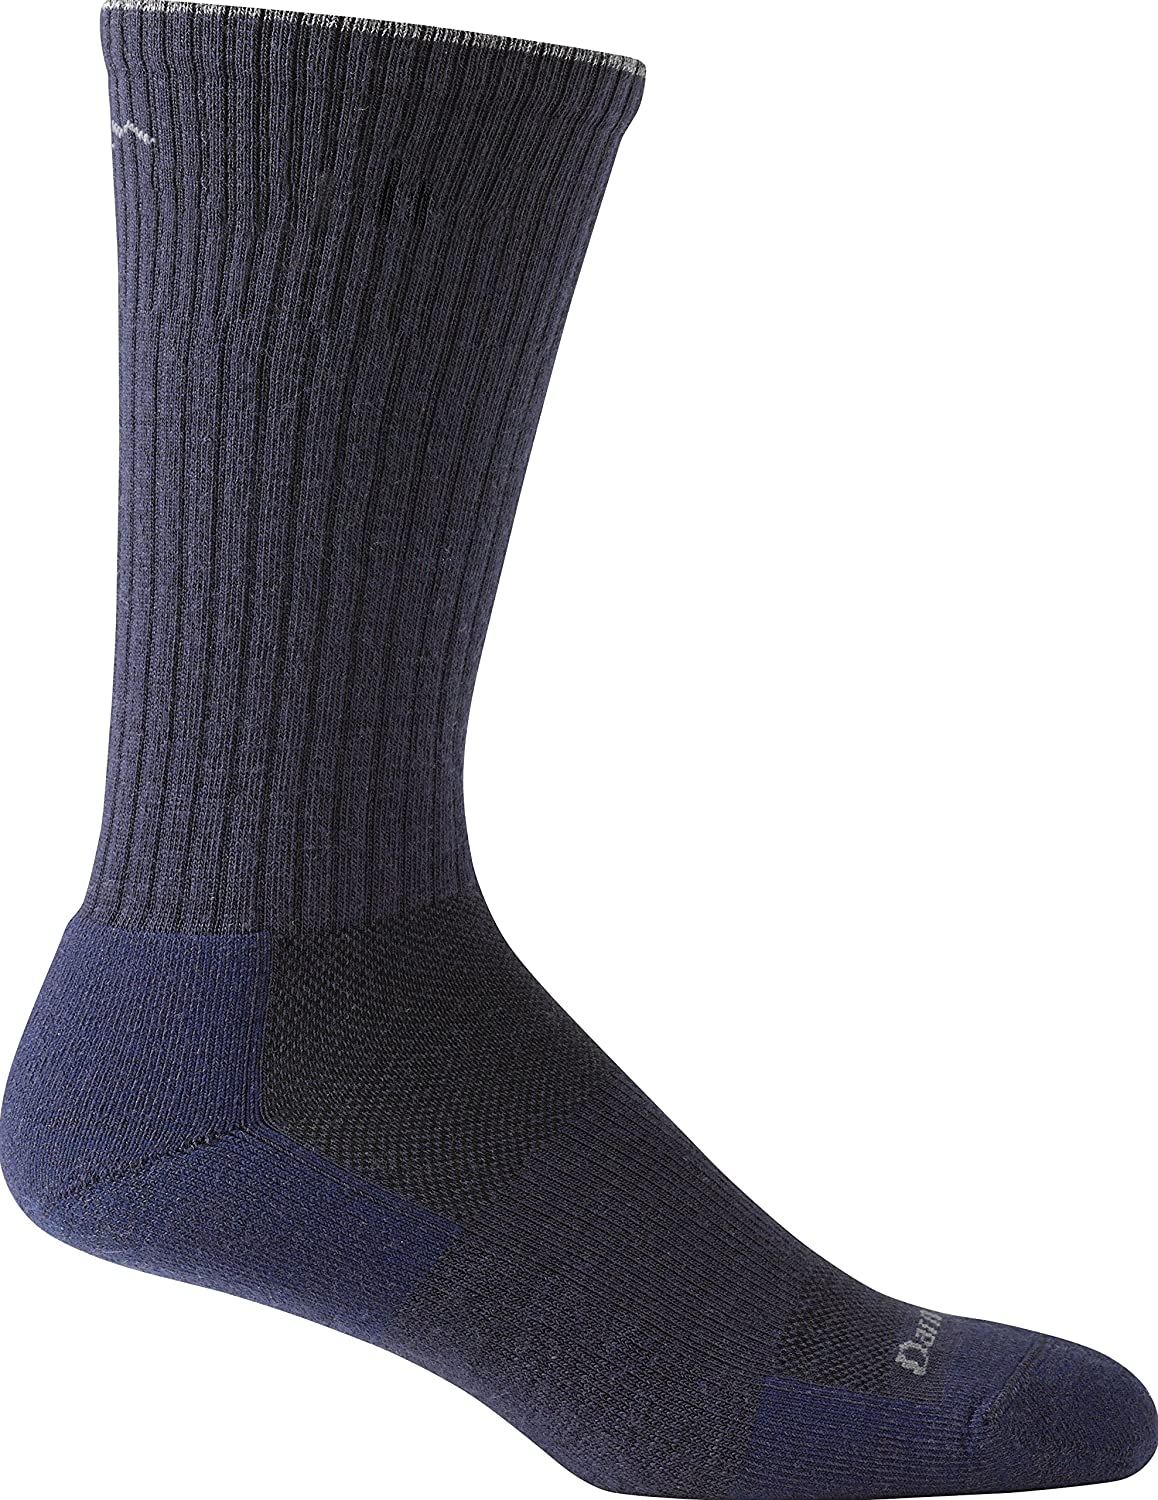 Image of Athletic Socks Darn Tough Men's Standard Issue Mid-Calf Light Cushion (Style 1474) Merino Wool - 6 Pack Special